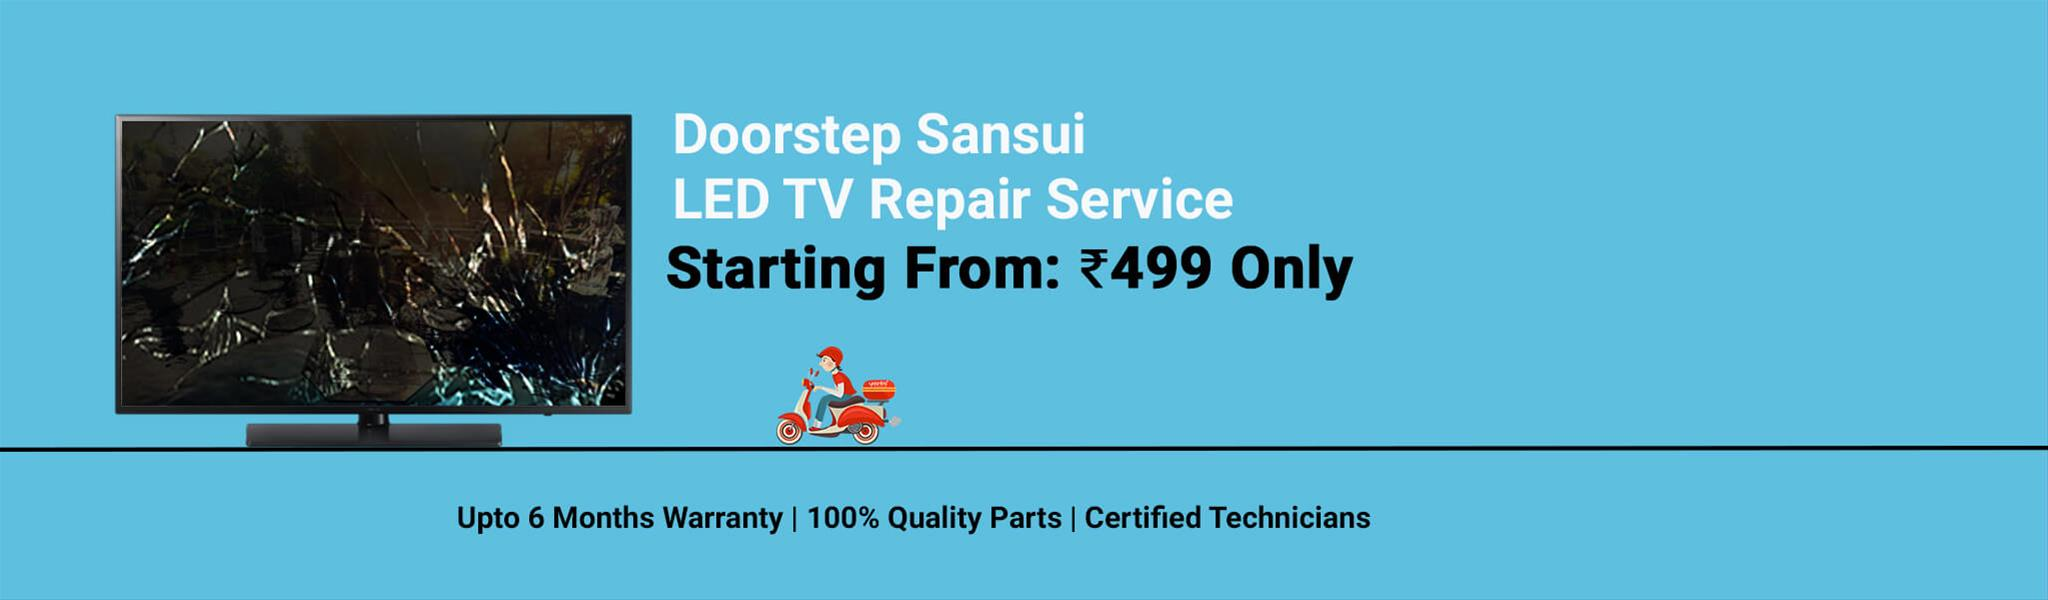 sansui-led-tv-repair.jpg